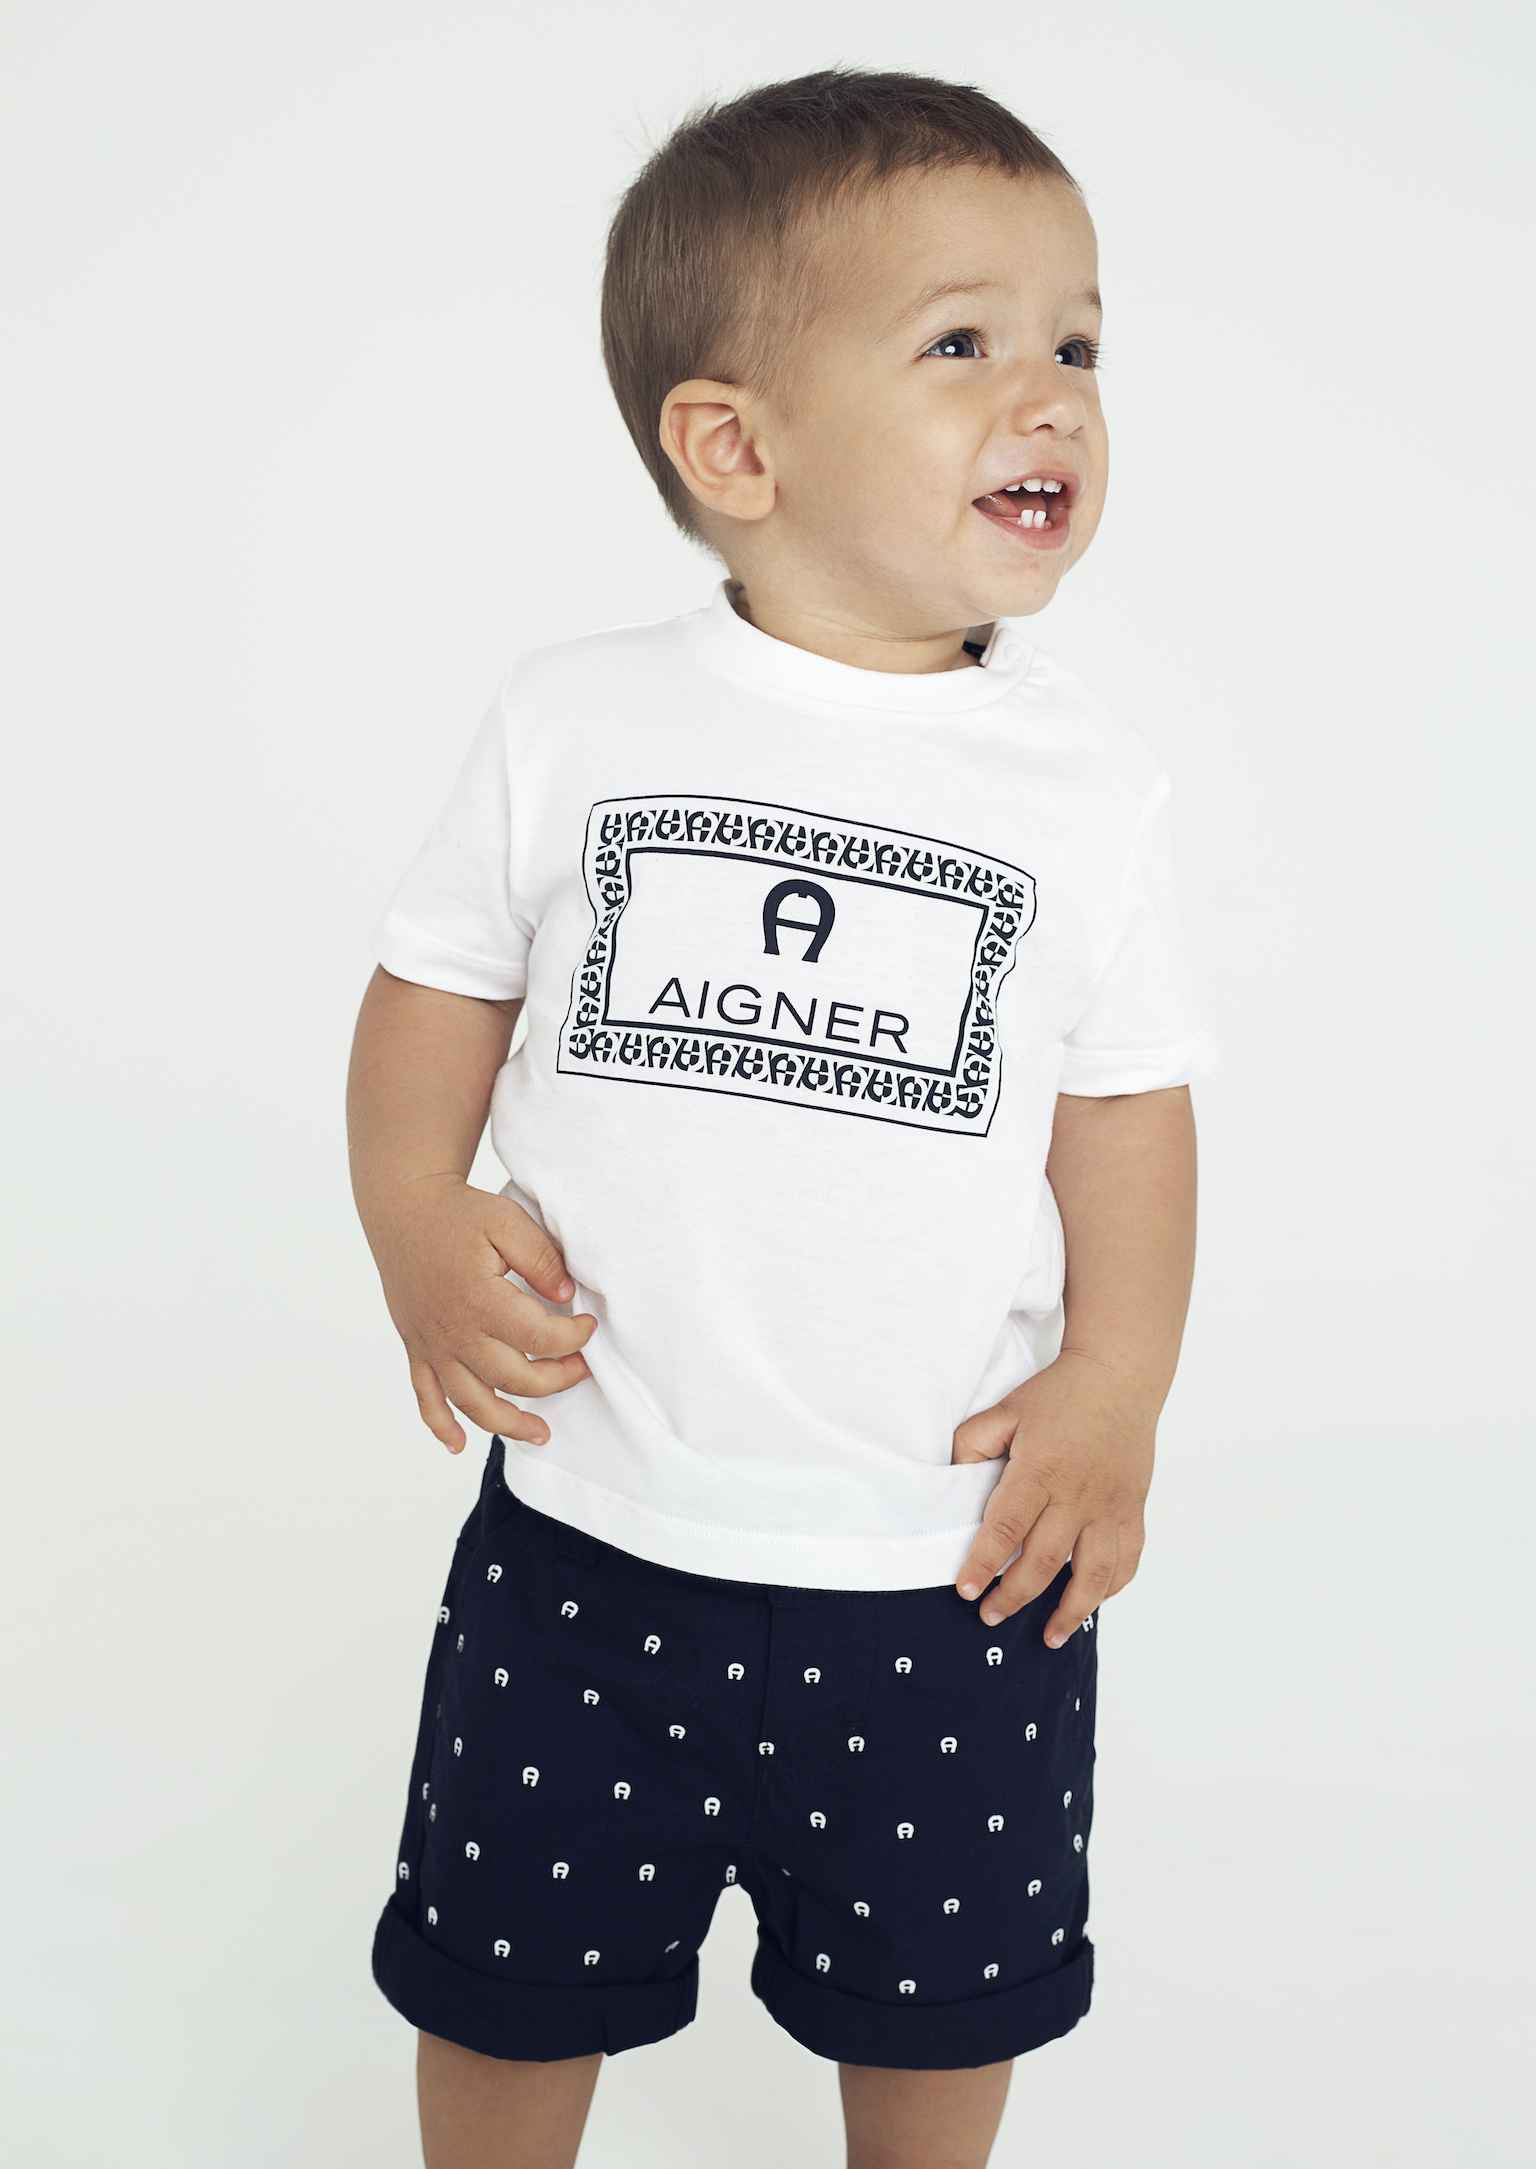 Aigner Kids_Outfitinspiration_Frühjahr_Sommer_2021_4